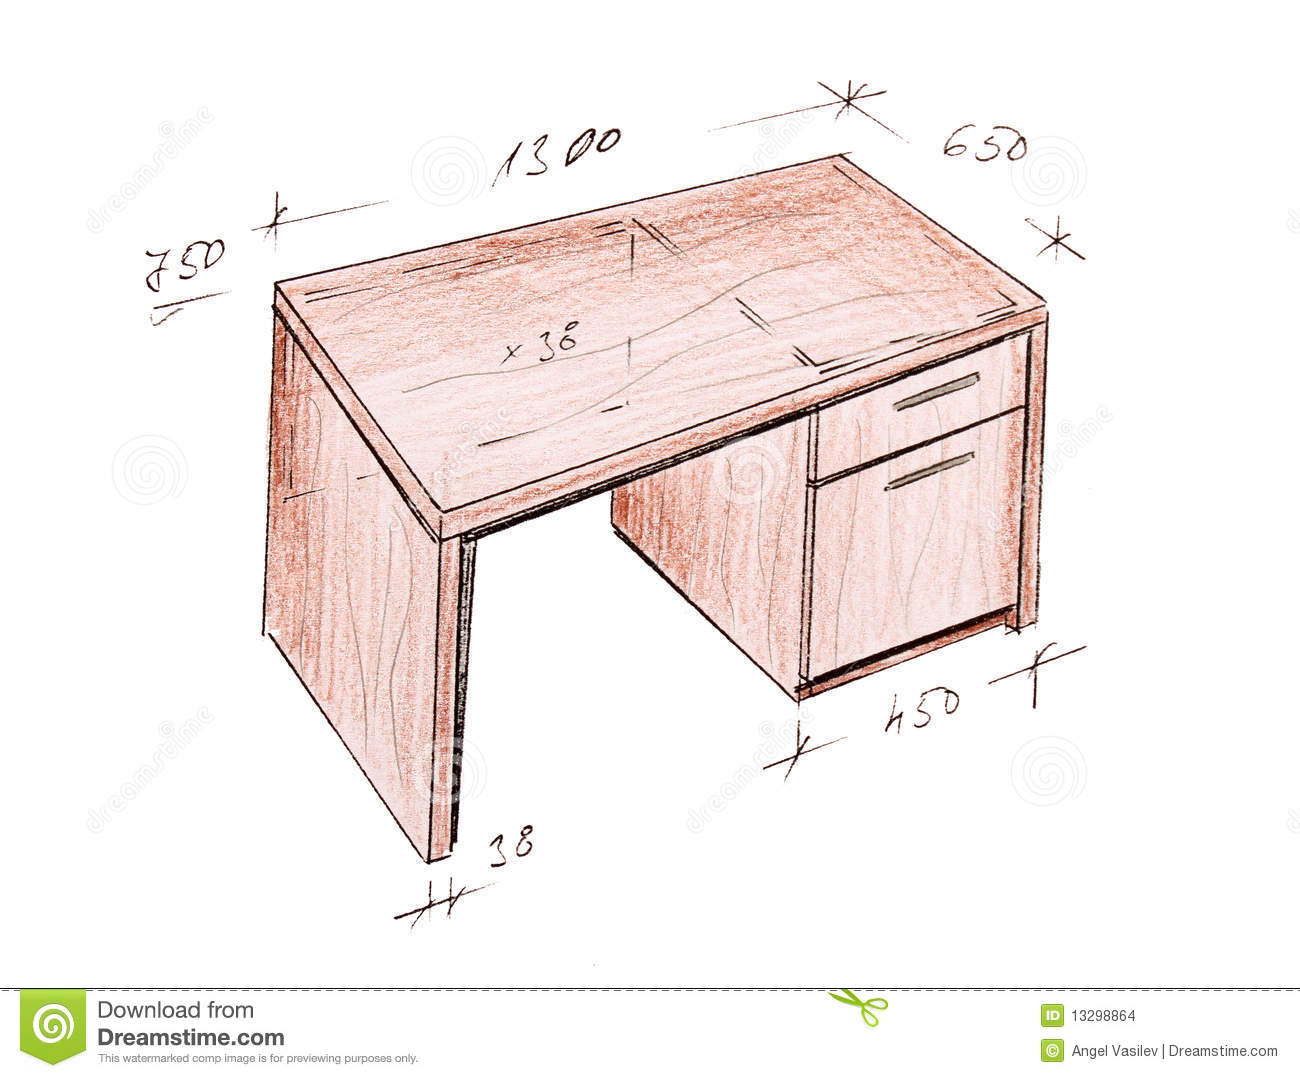 Modern Furniture Drawings furniture drawings zac douglas design cad technical modern